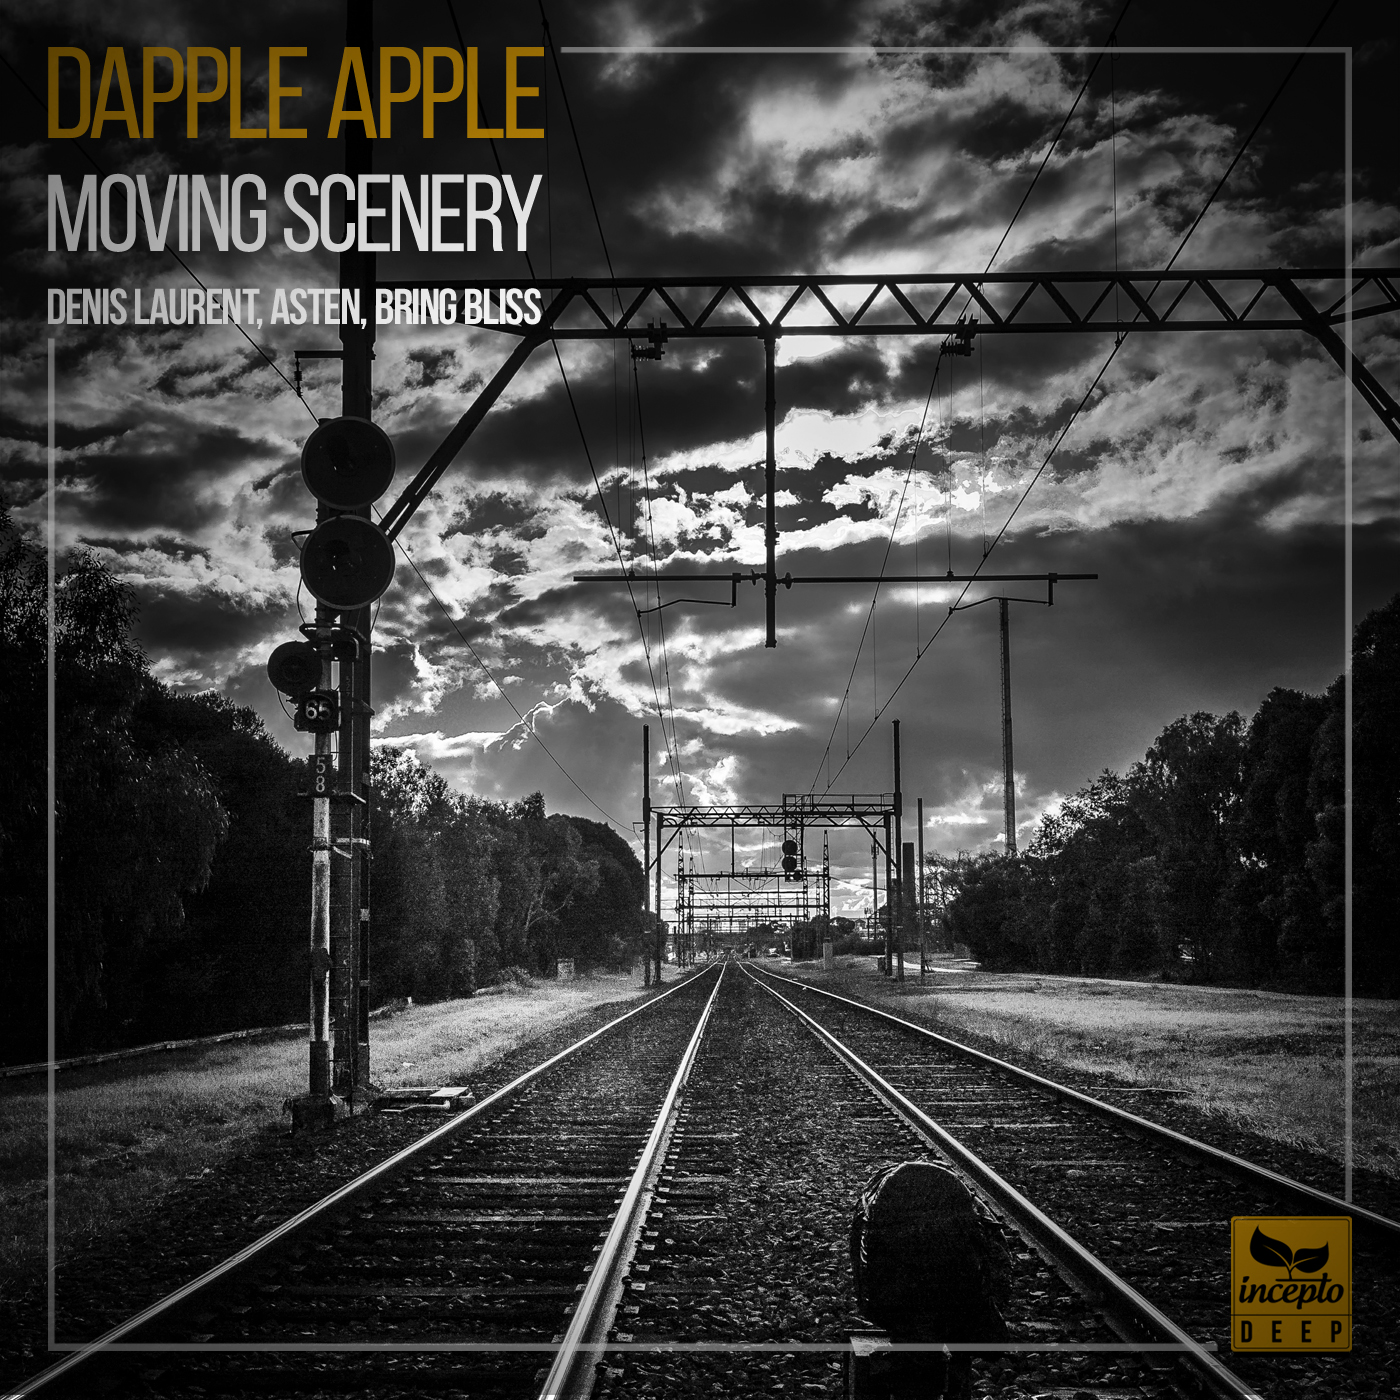 Dapple Apple - Moving Scenery (denis Laurent Remix) on Revolution Radio